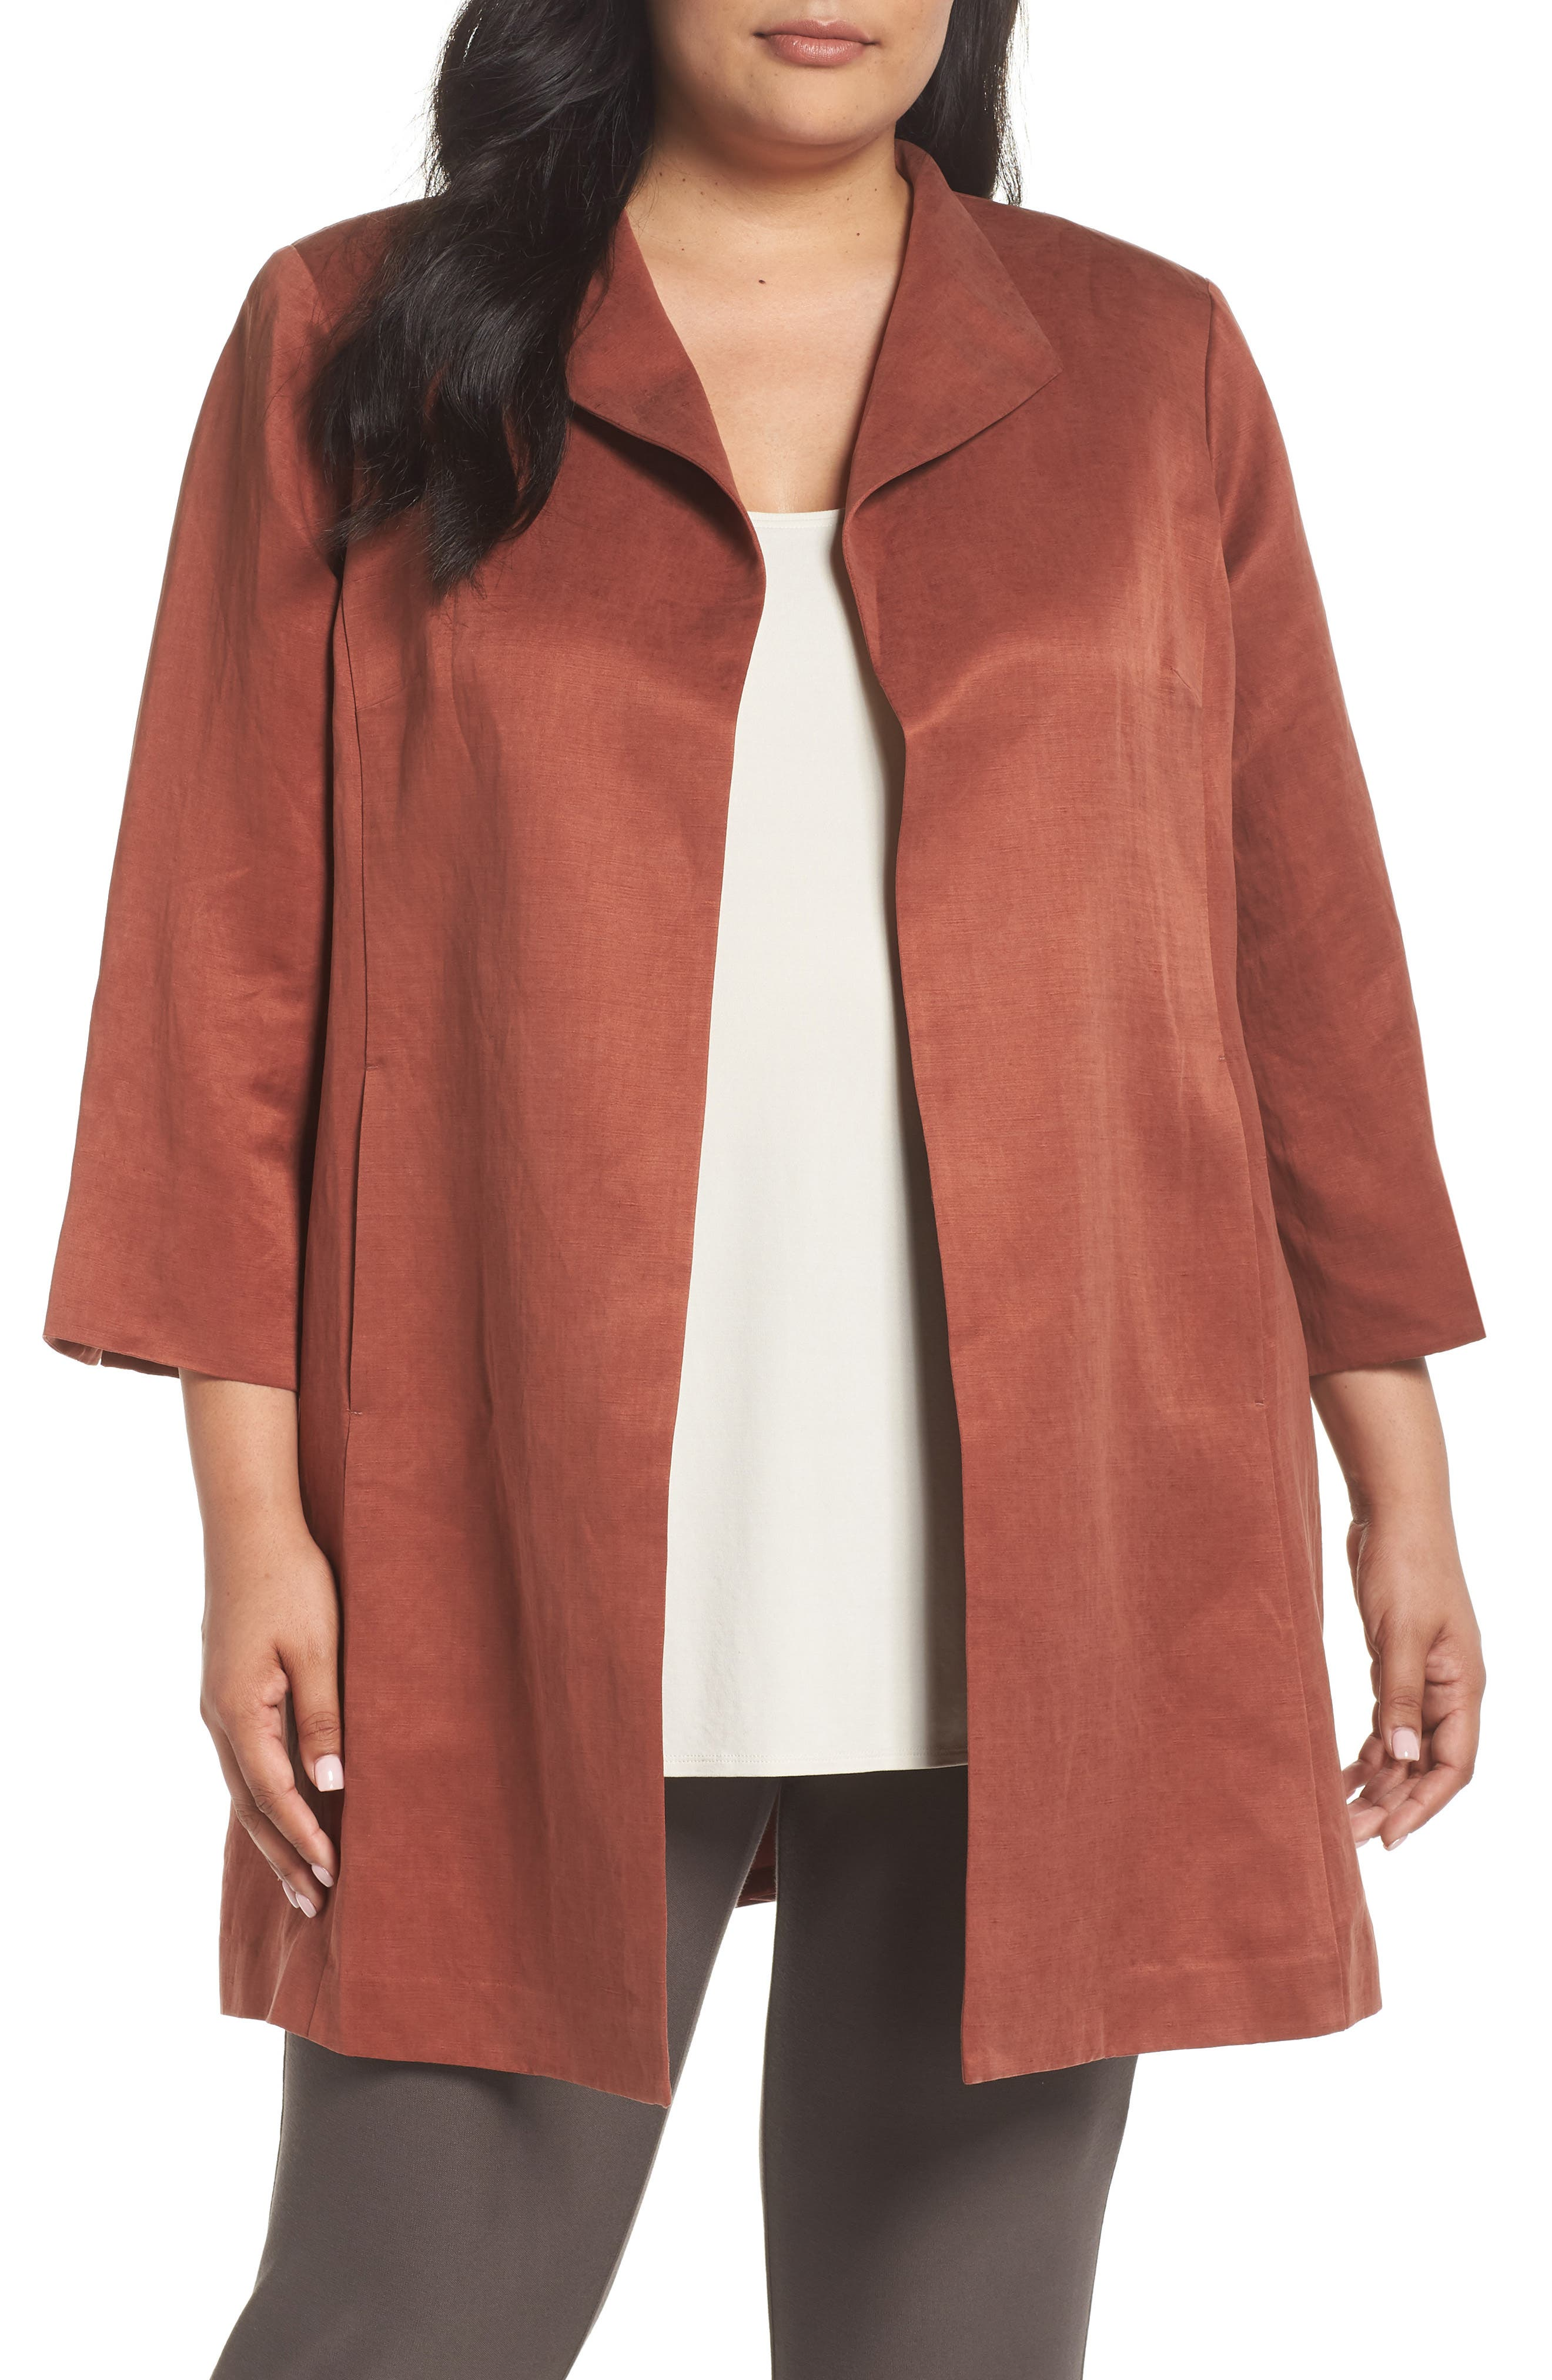 Alternate Image 1 Selected - Eileen Fisher Linen & Silk High Collar Coat (Plus Size)